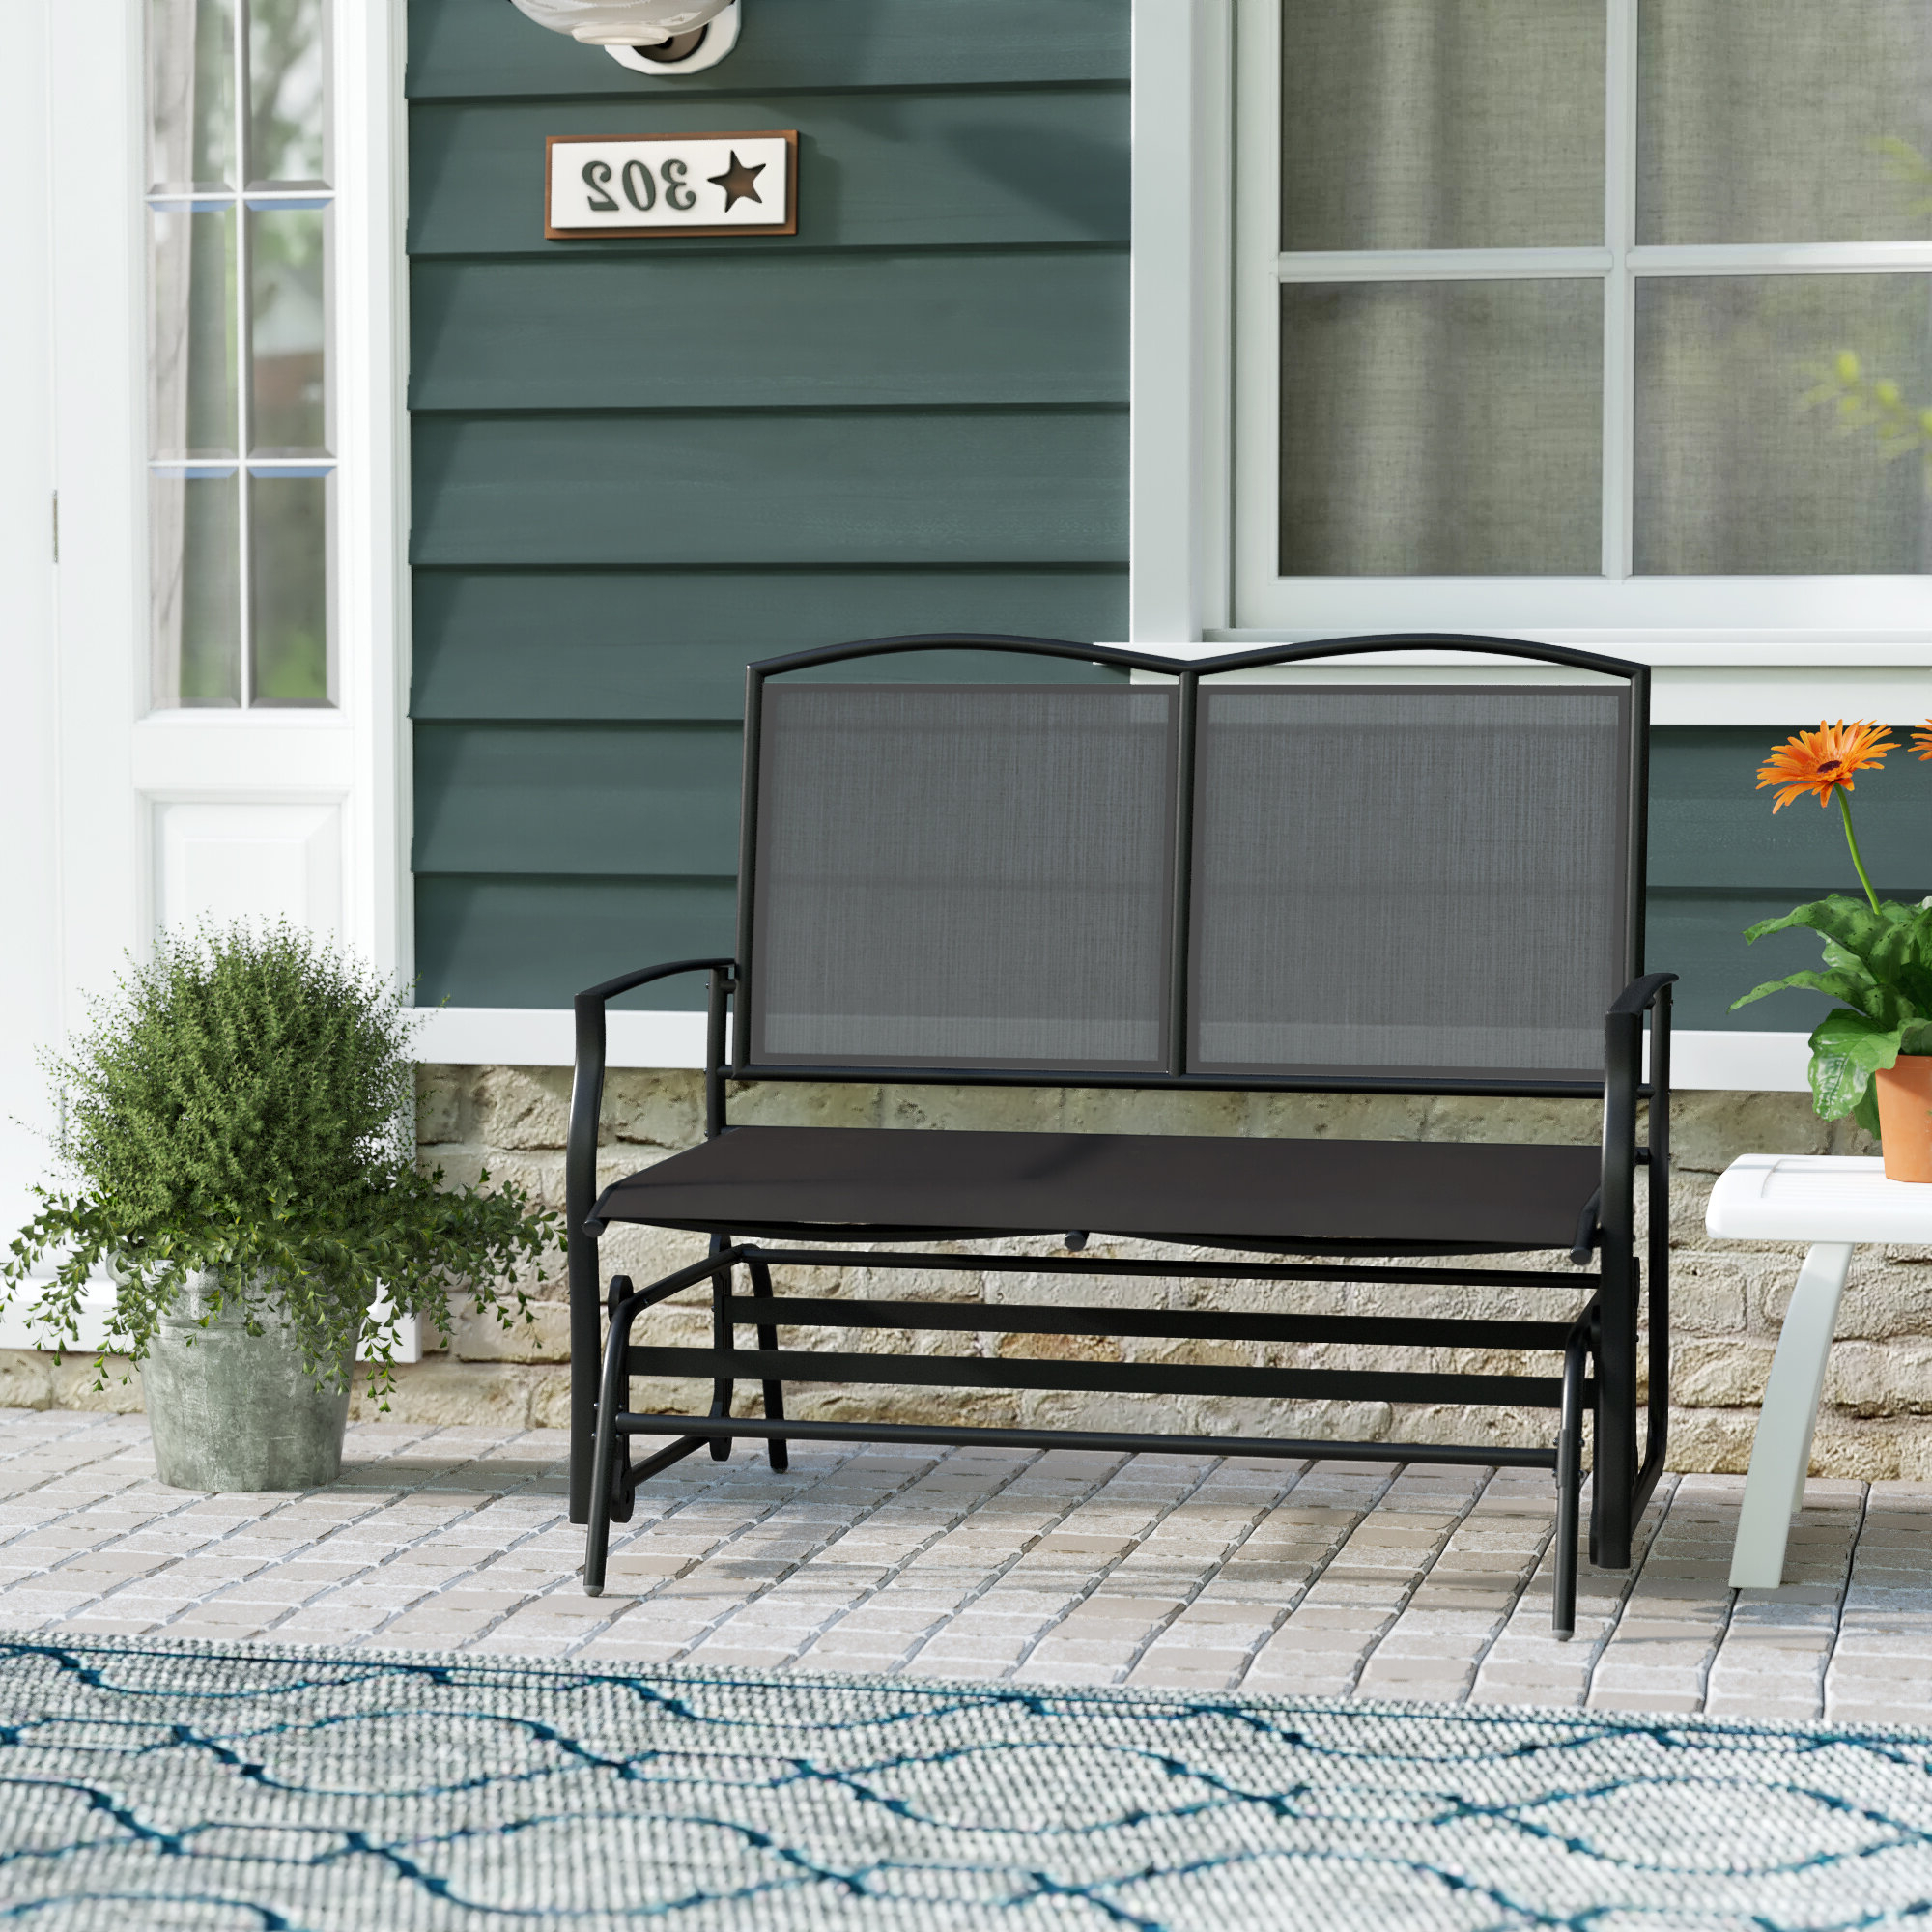 2020 Ashong 2 Seat Steel Glider Bench Pertaining To Black Steel Patio Swing Glider Benches Powder Coated (View 1 of 30)